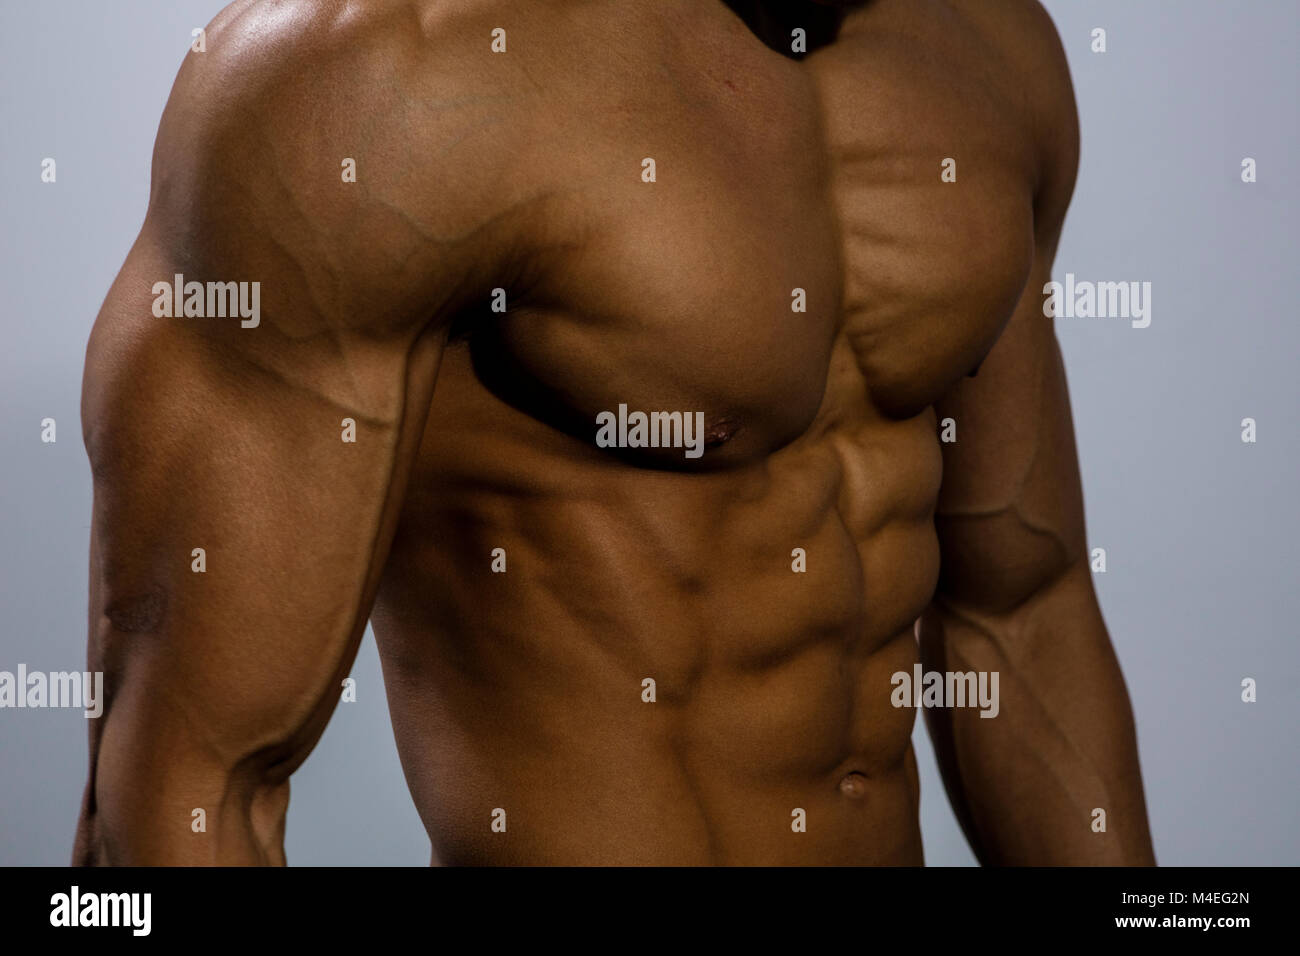 A fitness model torso with the chest muscles tightly flexed. Close up. - Stock Image